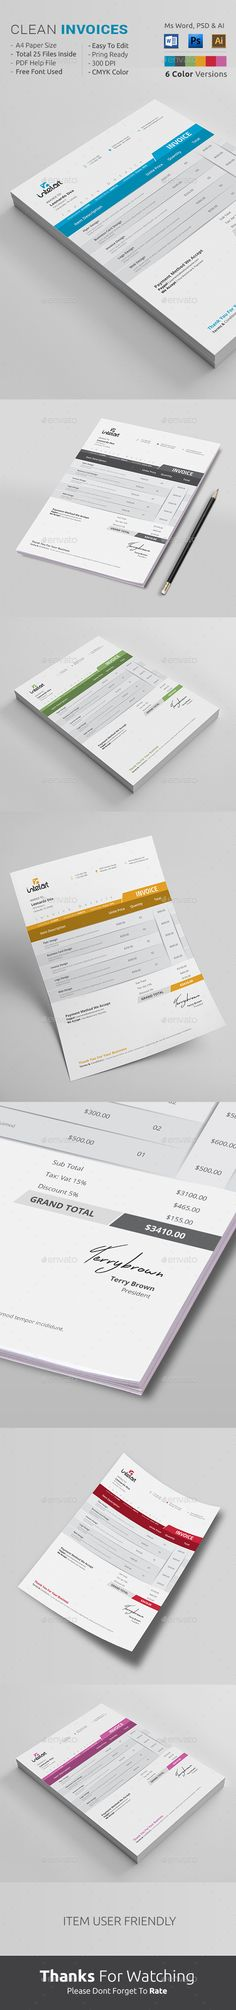 20 Creative Invoice \ Proposal Template Designs Template - microsoft invoices